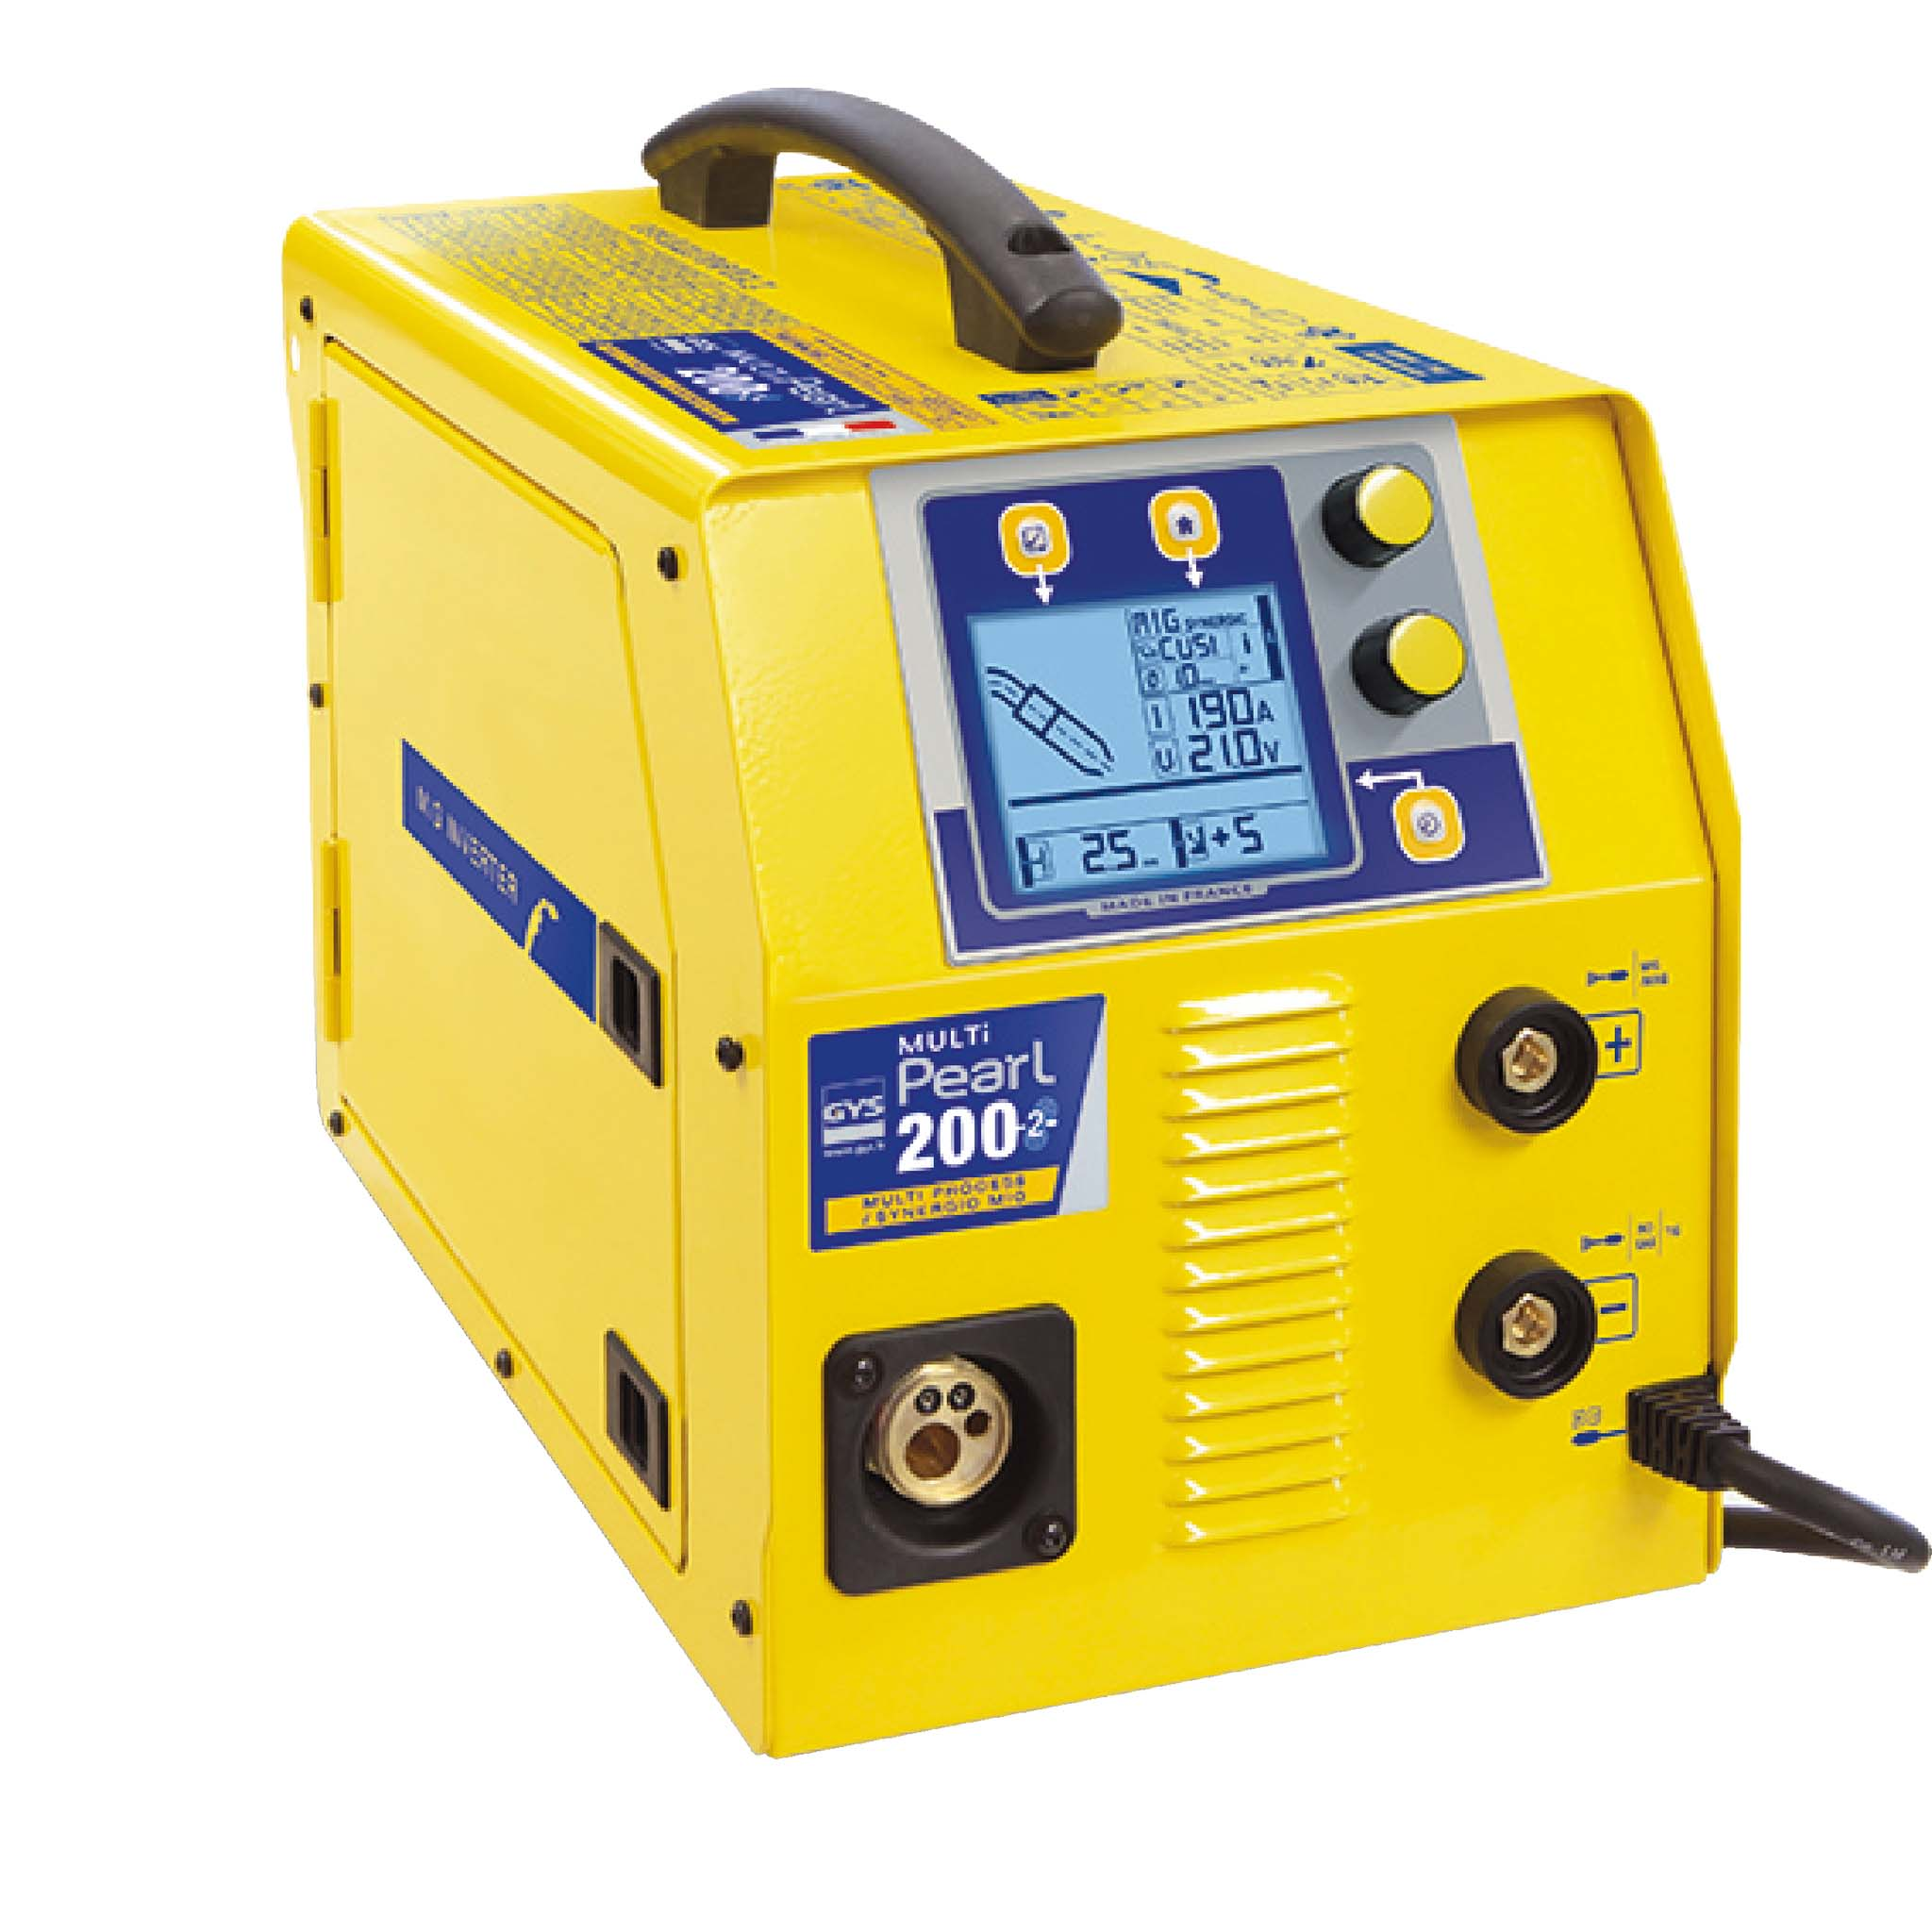 GYS MULTIPEARL 200-2 110V / 240V Multi-process welder